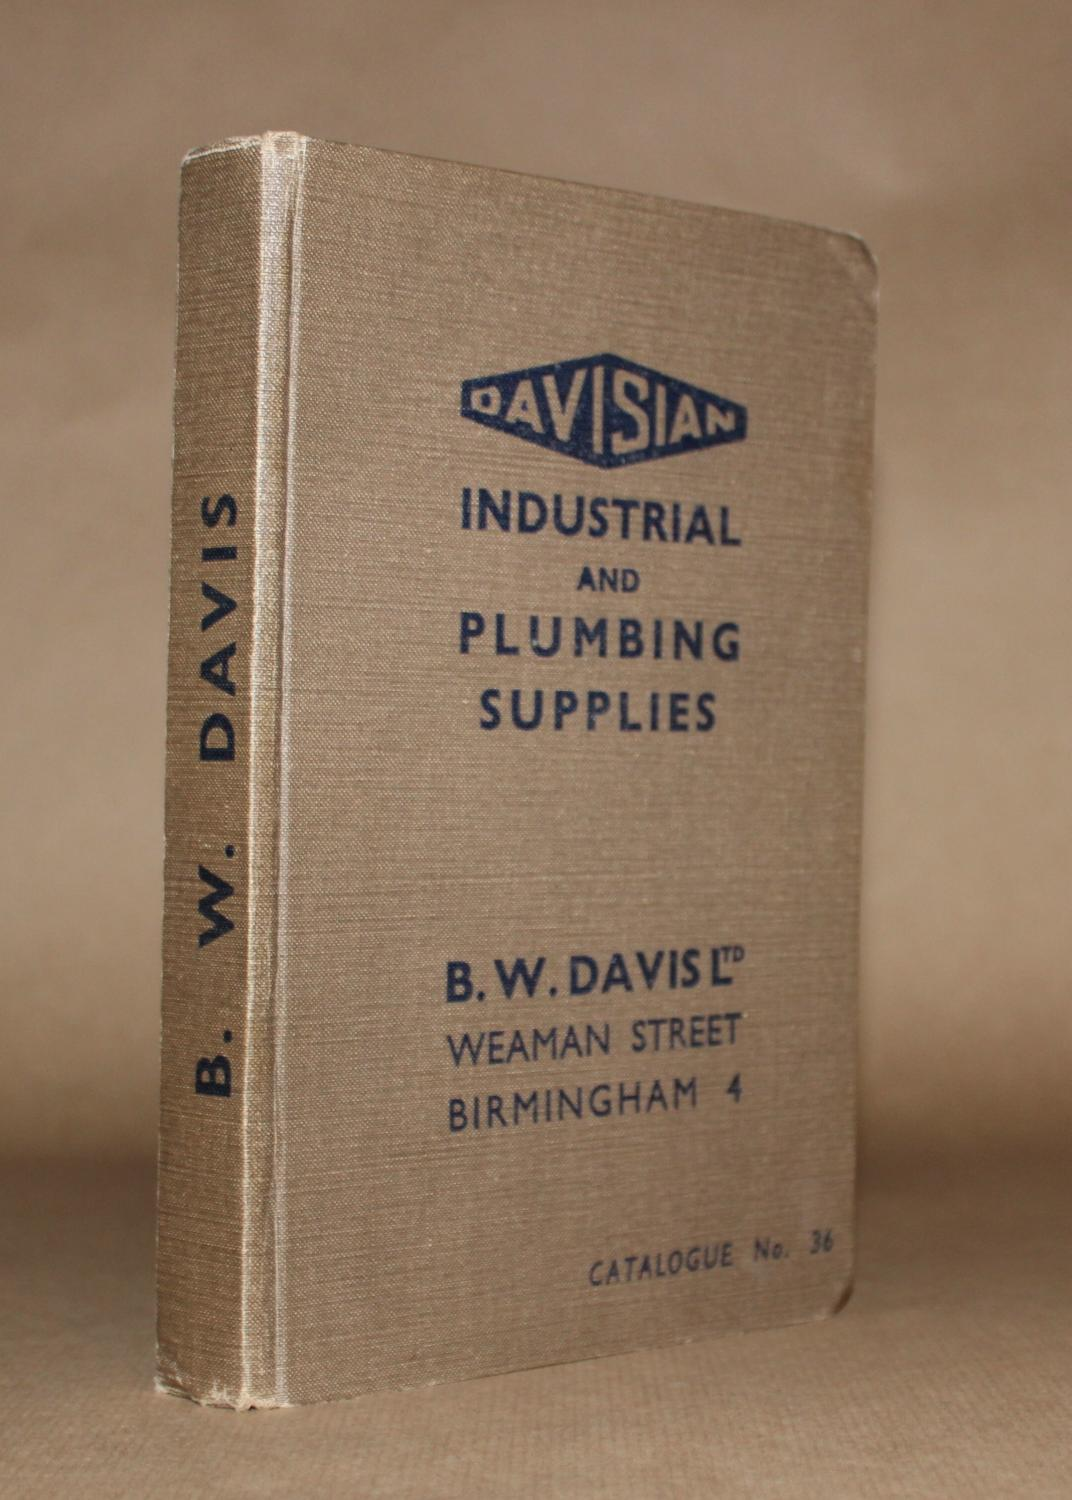 Davisian Industrial and Plumbing Supplies. Catalogue No. 36. Davisian Trade Catalogue. [ ] [Couverture rigide] 8vo., 314pp., hardback trade catalogue of B. W. Davis Ltd. Weaman Street, Birmingham 4, illustrated throughout, original brown cloth, lettered in dark blue to spine & front cover, little external wear, otherwise very good condition.